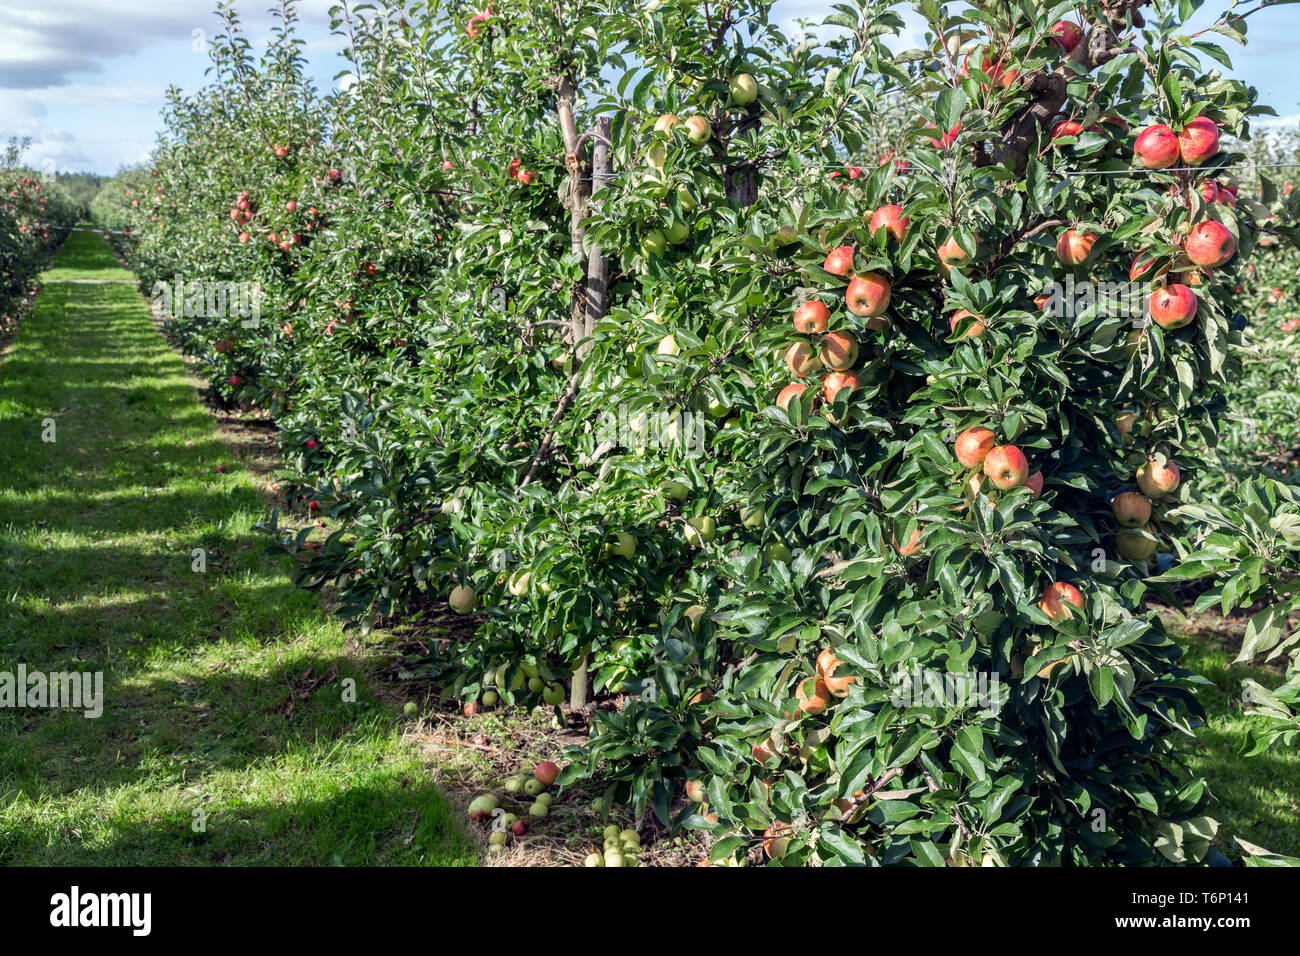 Dutch orchard with maturing apples - Stock Image